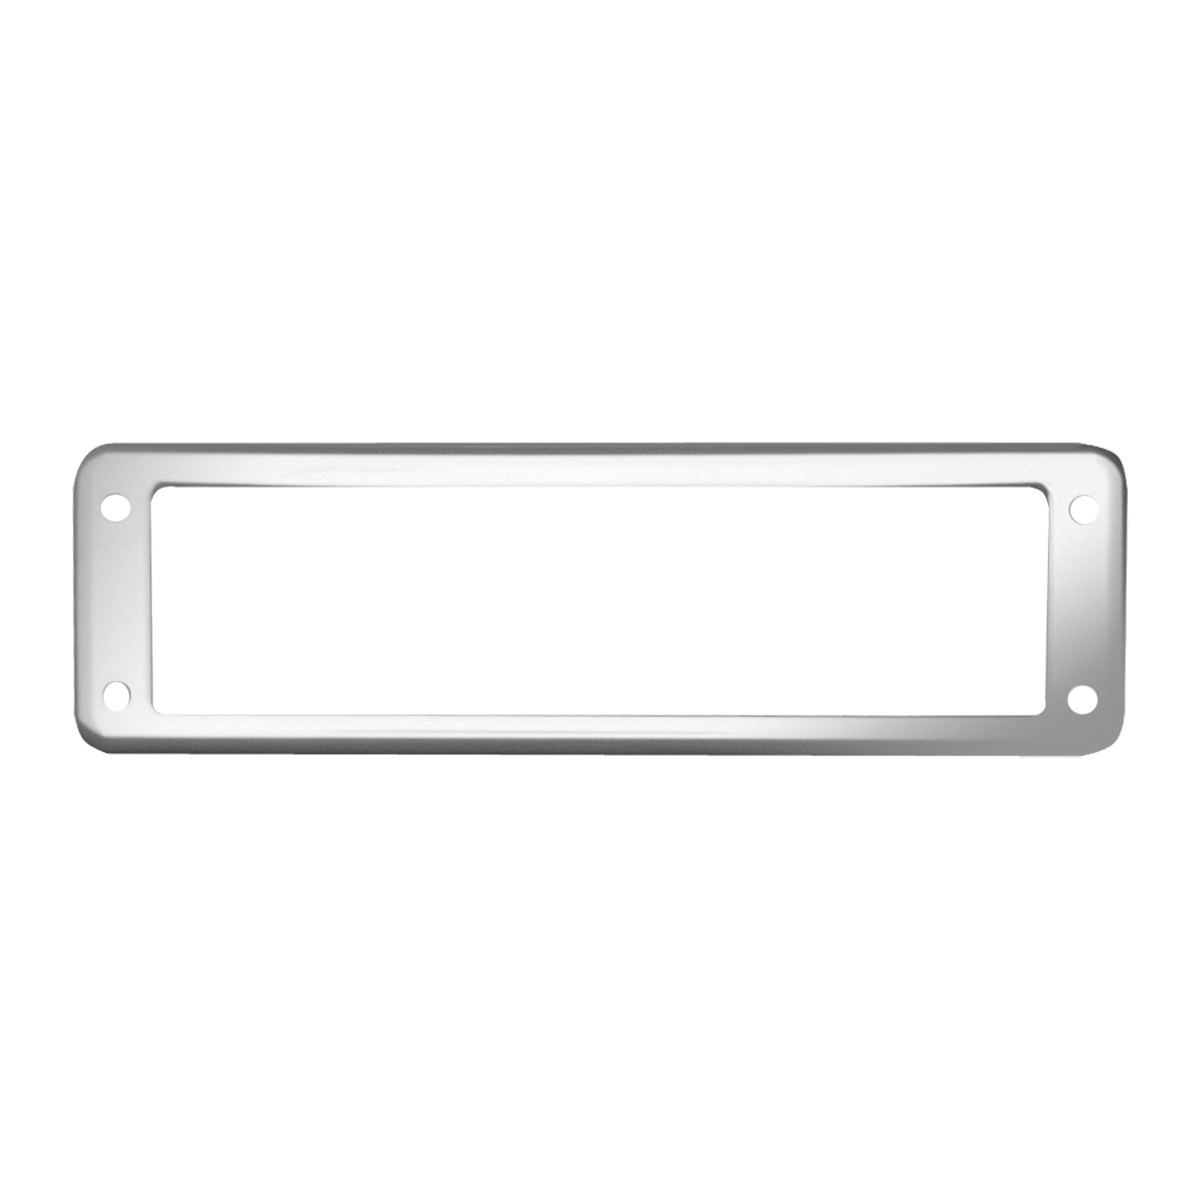 69004 Overhead Pocket Bezel for International